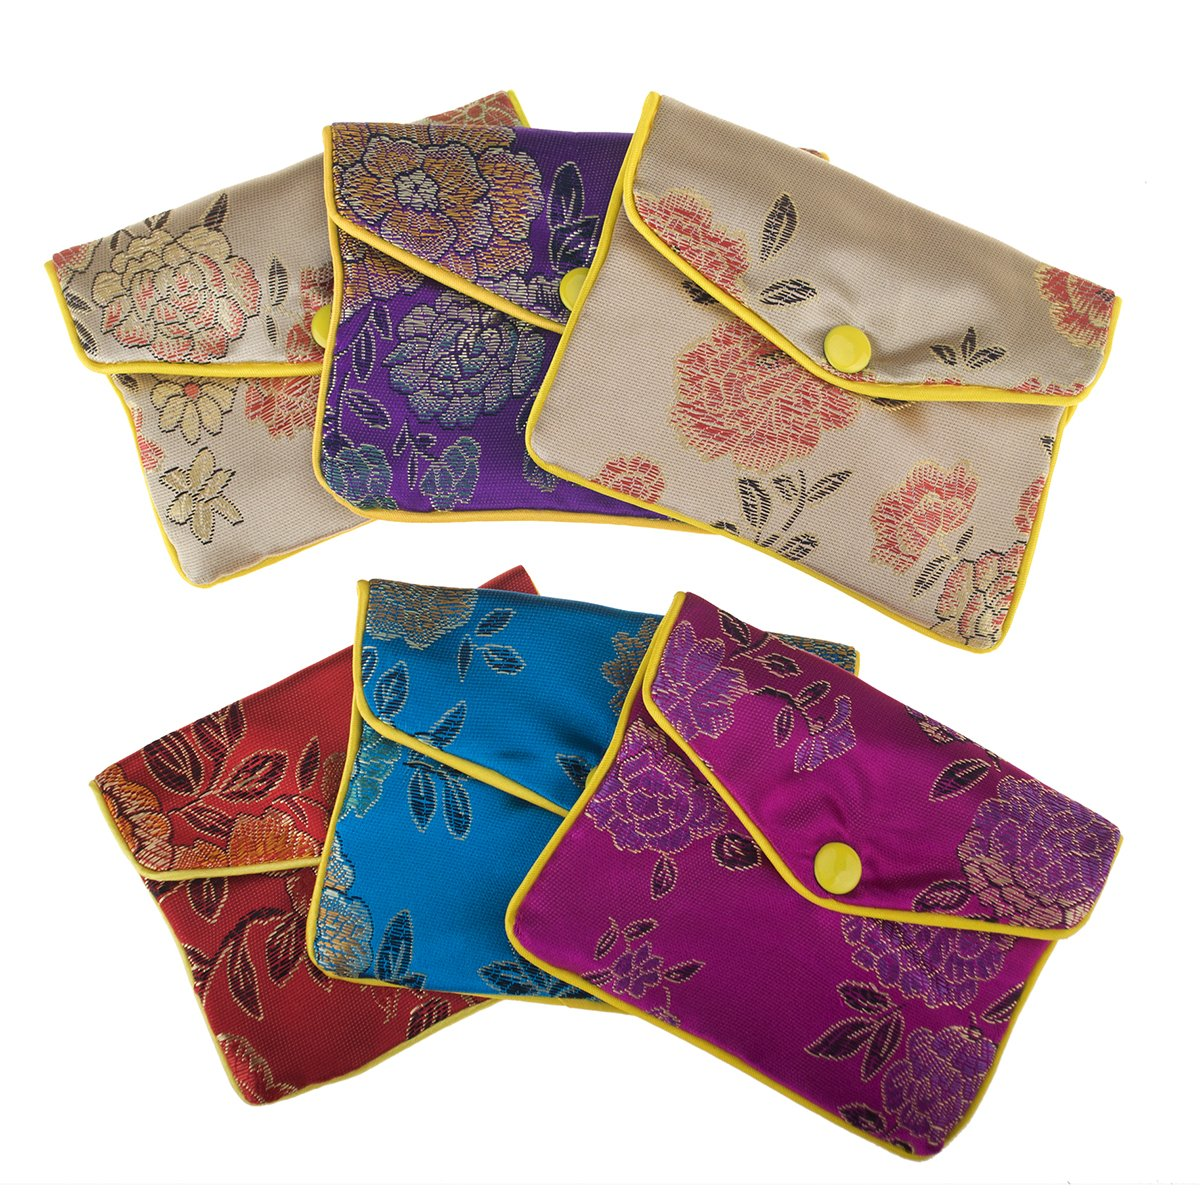 Aspire 120 Pieces Jewelry Pouch, Zipper Purse Gift Bags, Snap Closure - 3 x 4 Inch-Assorted